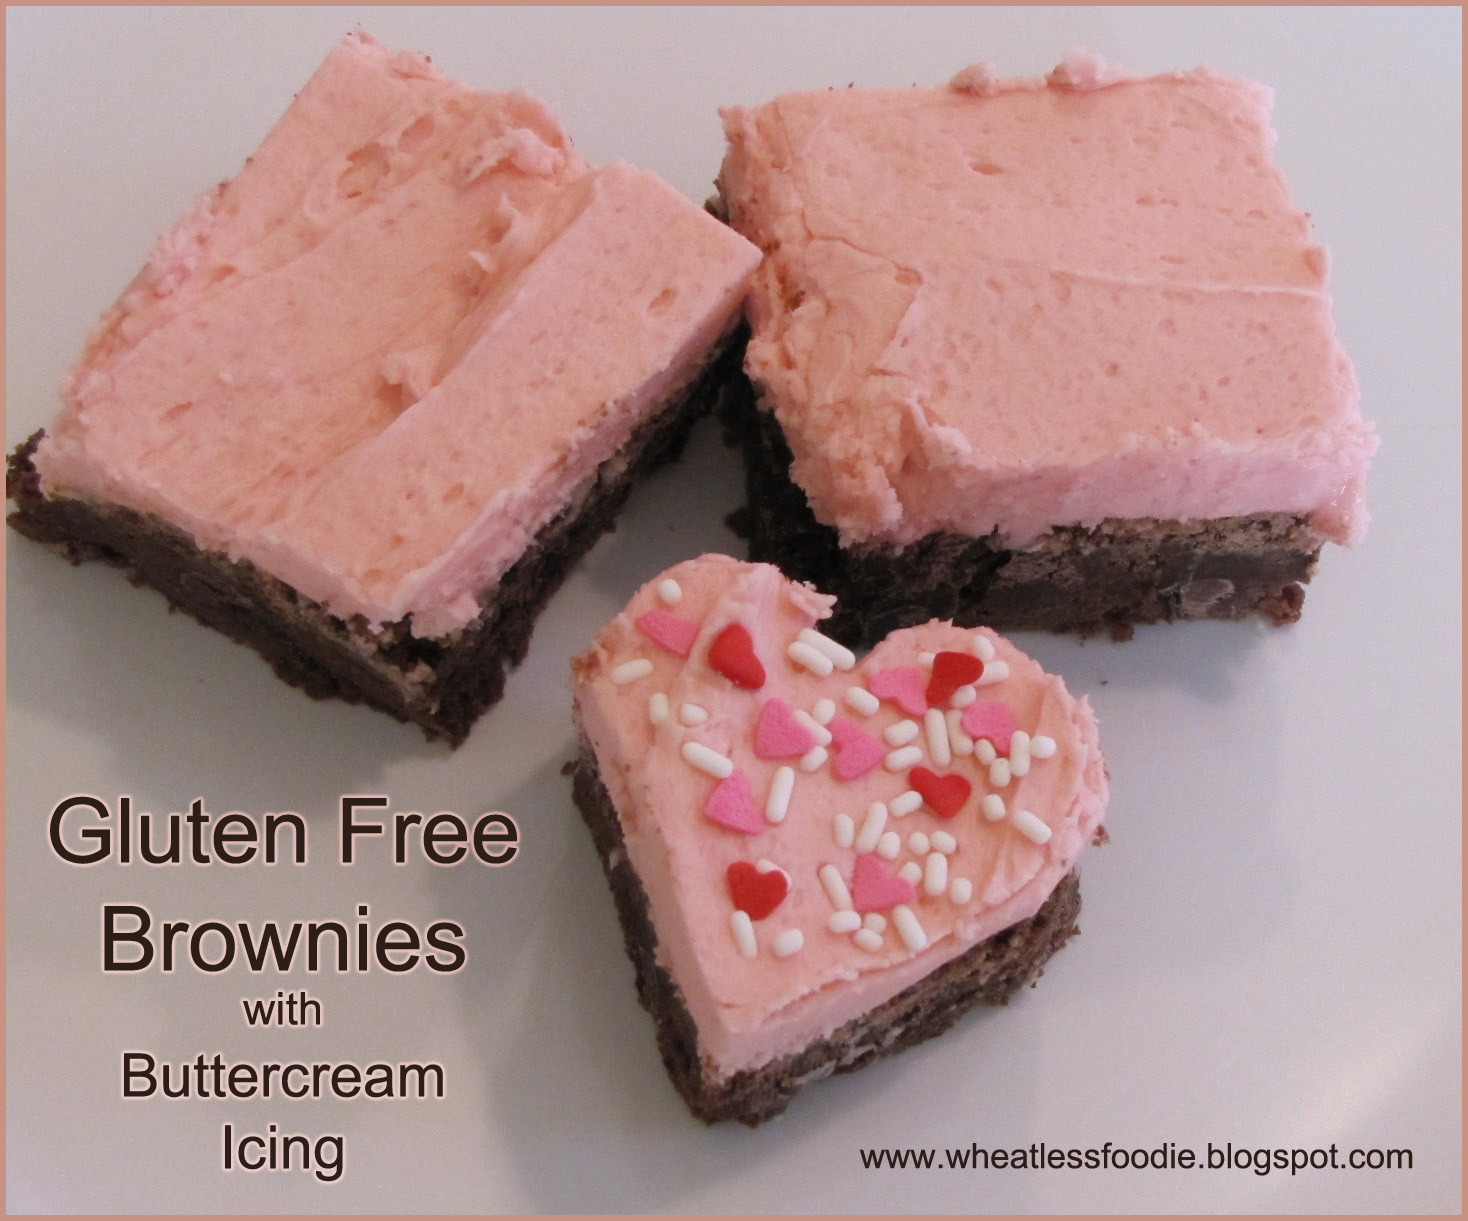 Wheatless Foodie: Gluten Free Brownies with Buttercream Icing